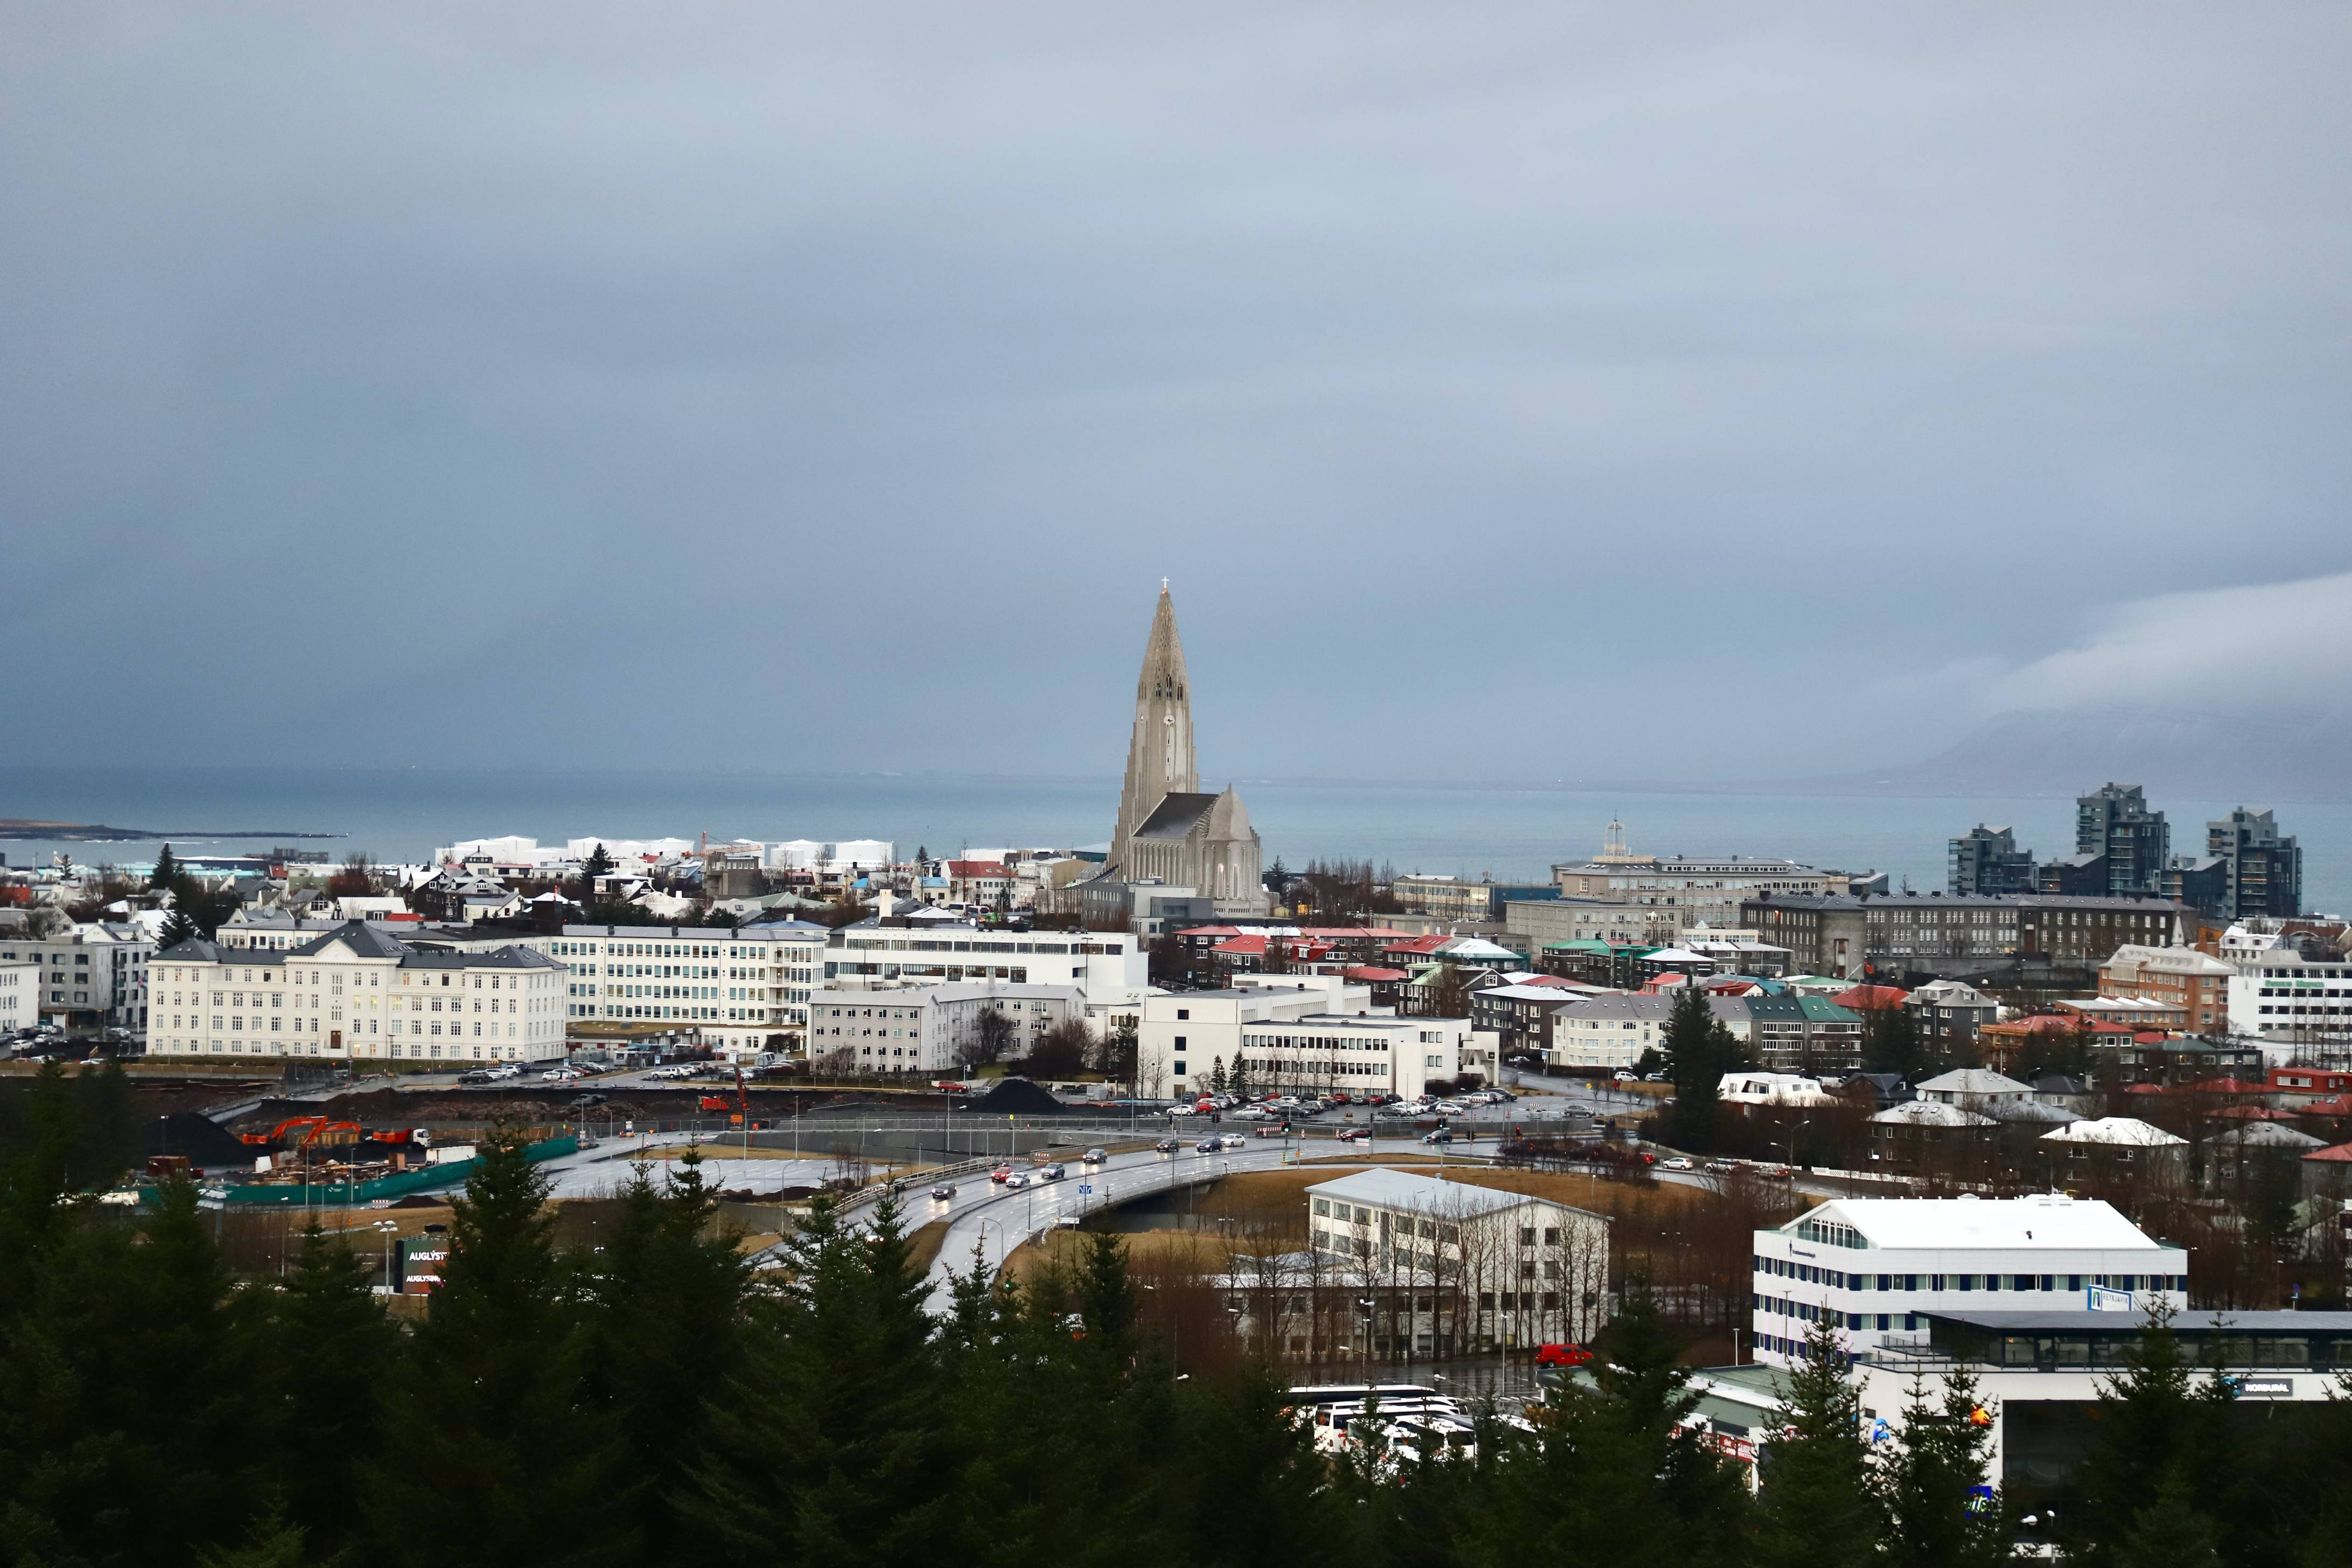 down-town-reykjavik-seen-from-perlan-on-a-moody-cloudy-day